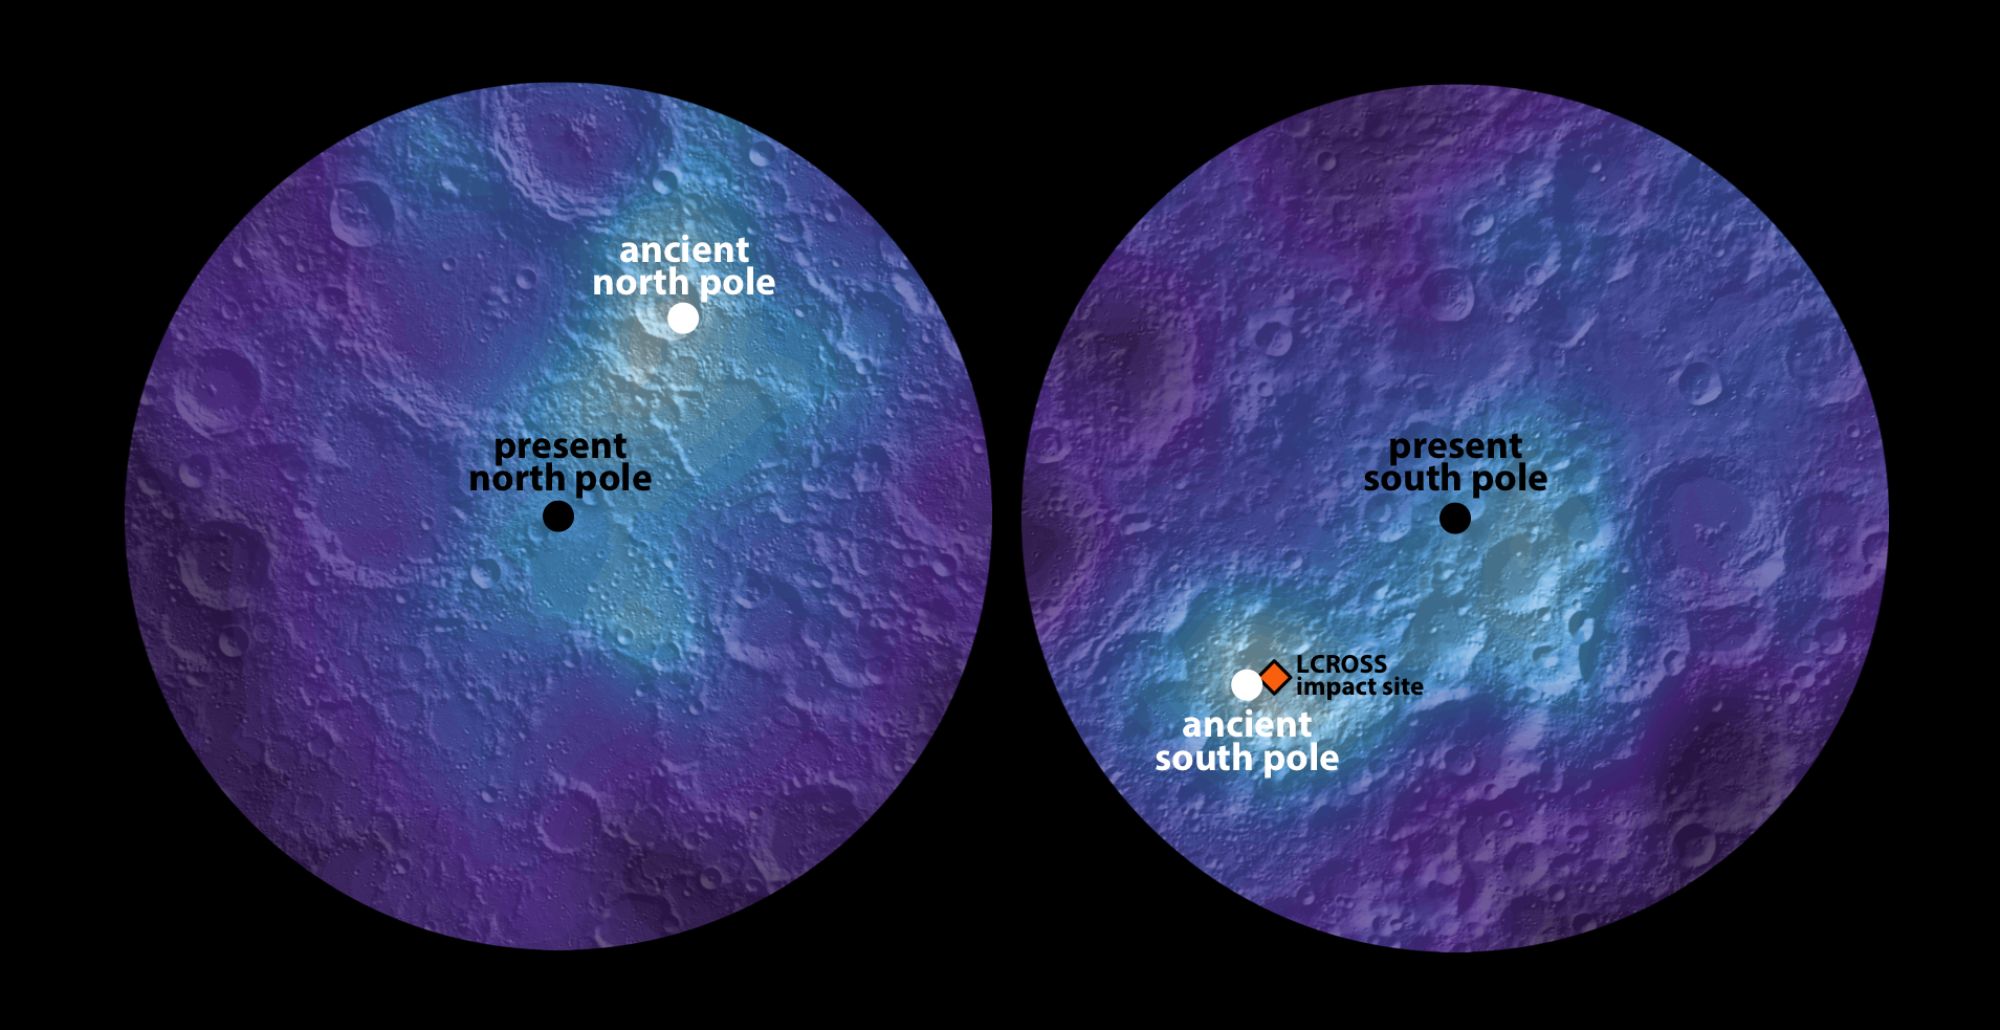 The moon's ancient north pole was located near the impact site of NASA's Lunar Crater Observation and Sensing Satellite, or LCROSS, which provided evidence for the presence of water ice on today's lunar surface.